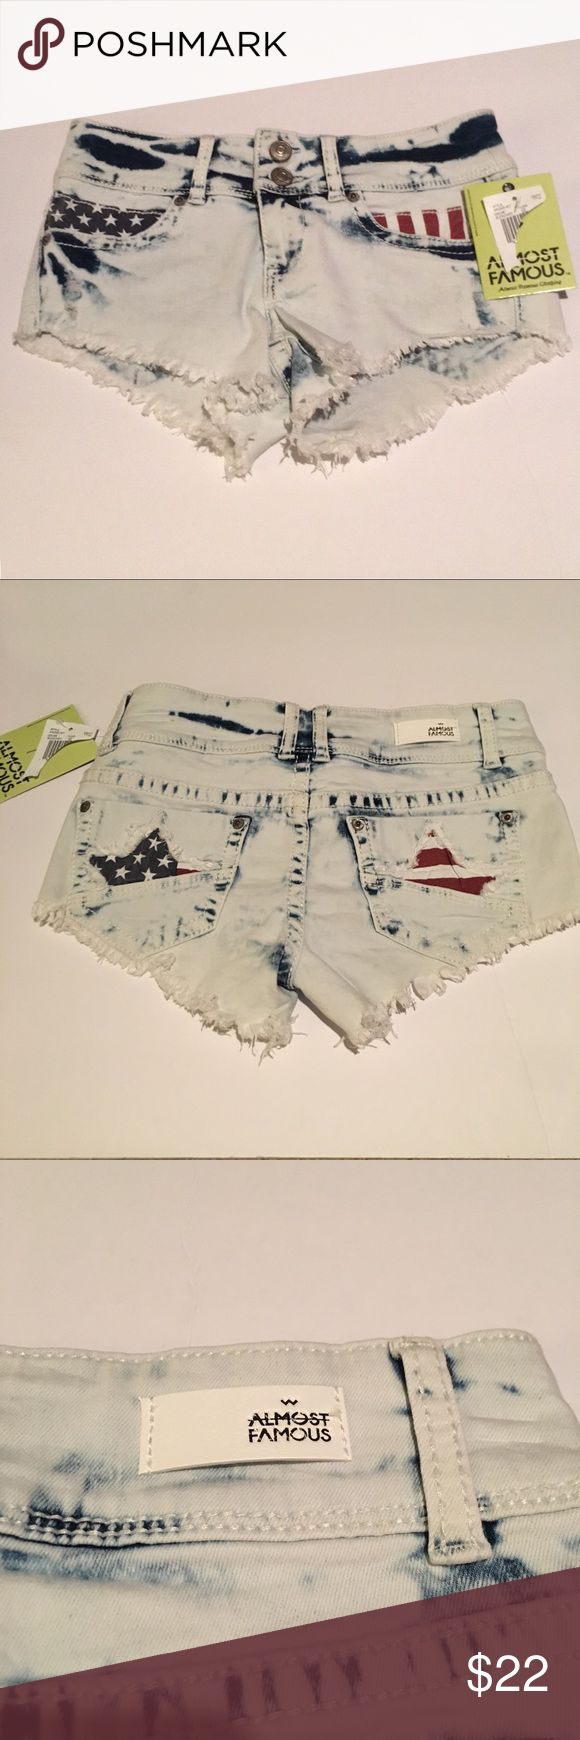 Almost Famous American Flag Shorts These Almost Famous shorts are nwt. They feature American flag pockets in the front and stars on the back pockets. Bleach washed. Almost Famous Shorts Jean Shorts